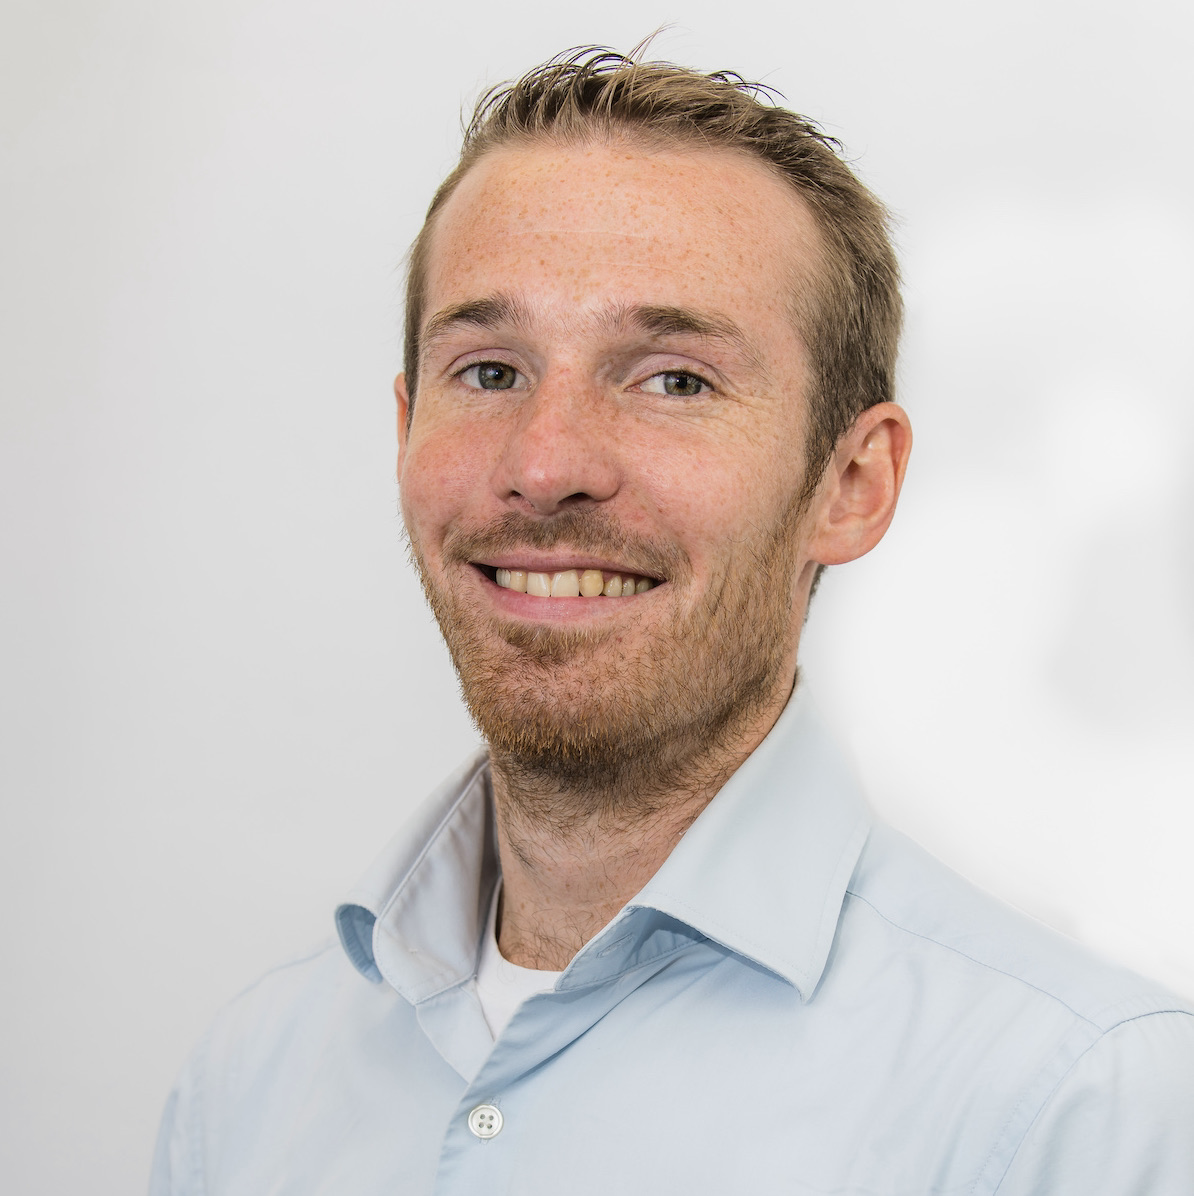 Dr Tim Guilliams, cofounder and chief executive of healthtech startup Healx